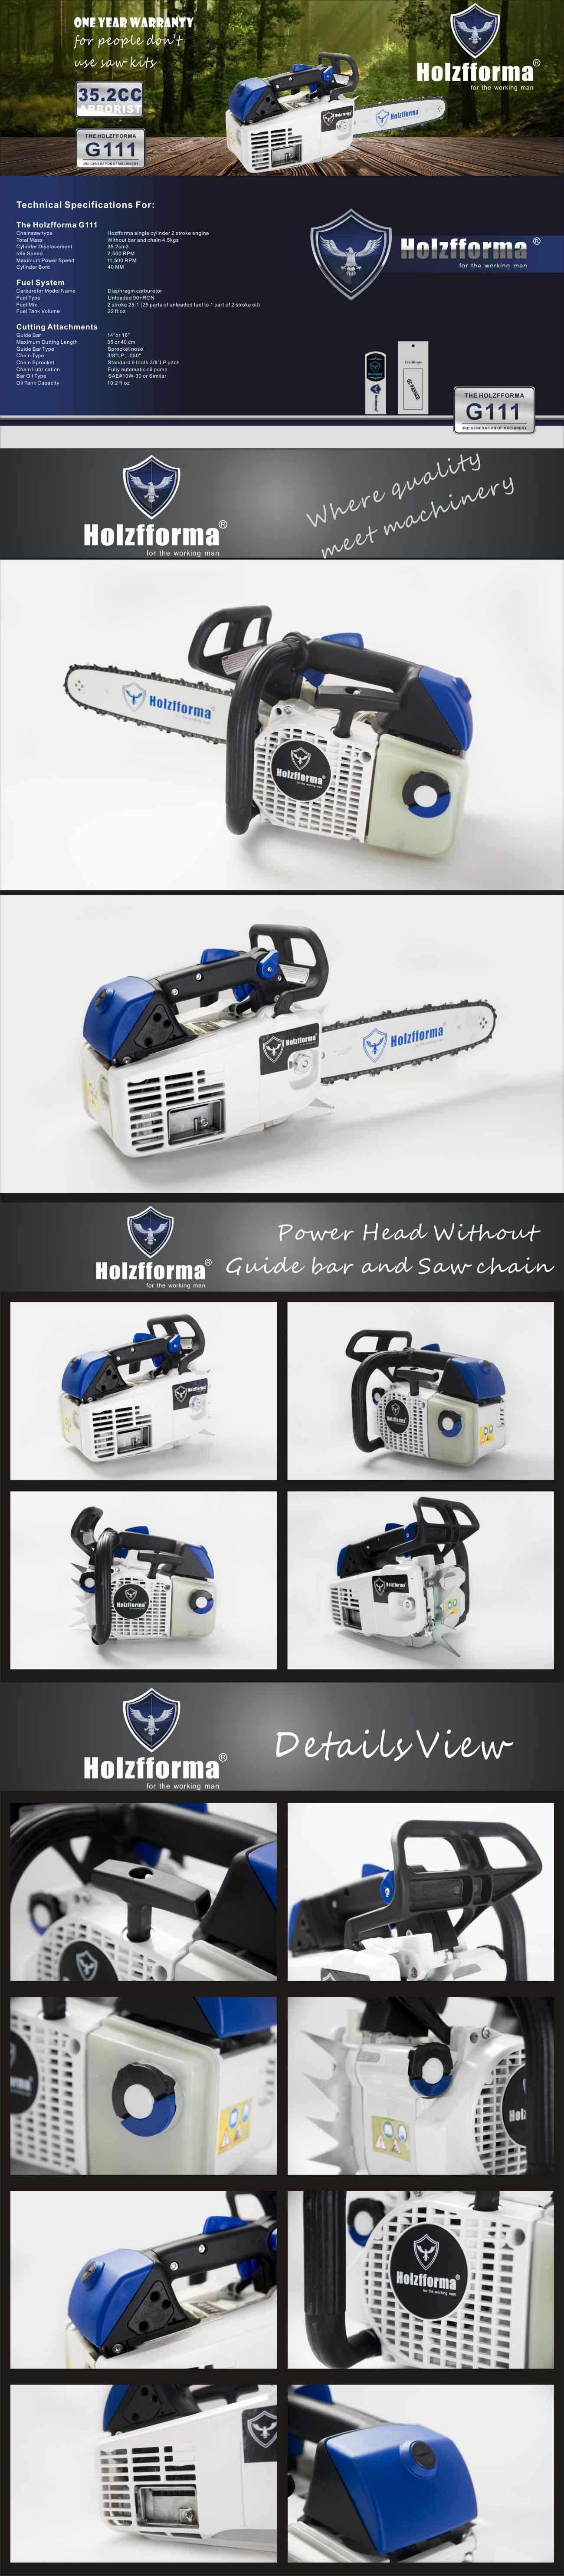 35 2cc Holzfforma® G111 Top Handle Gasoline Chain Saw Power Head Only  Without Guide Bar and Saw Chain All Parts Are Compatible With MS200T 020T